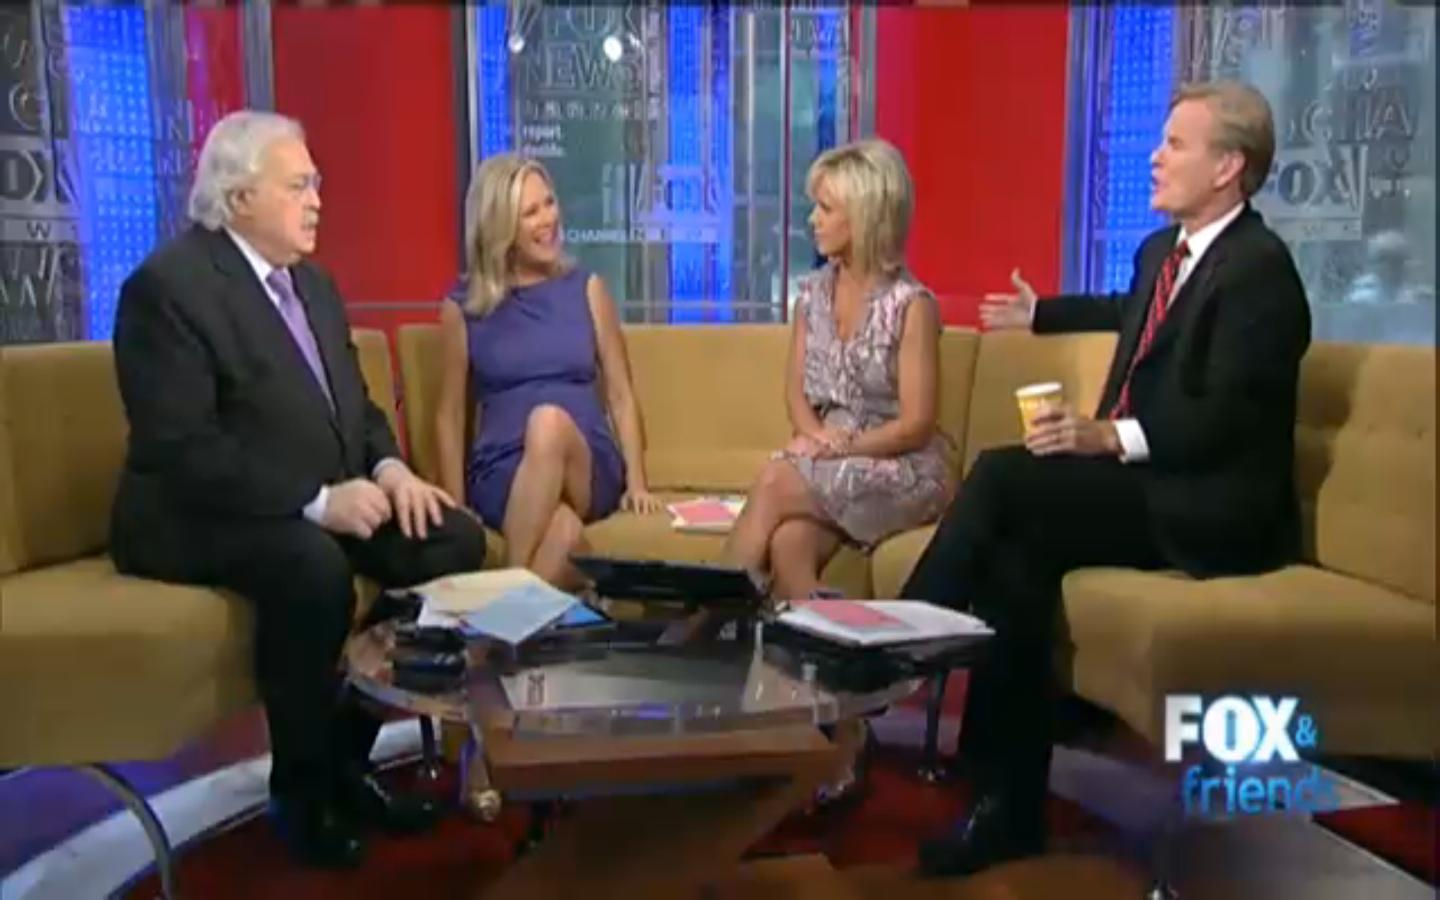 Gretchen carlson fox news upskirt pic apologise